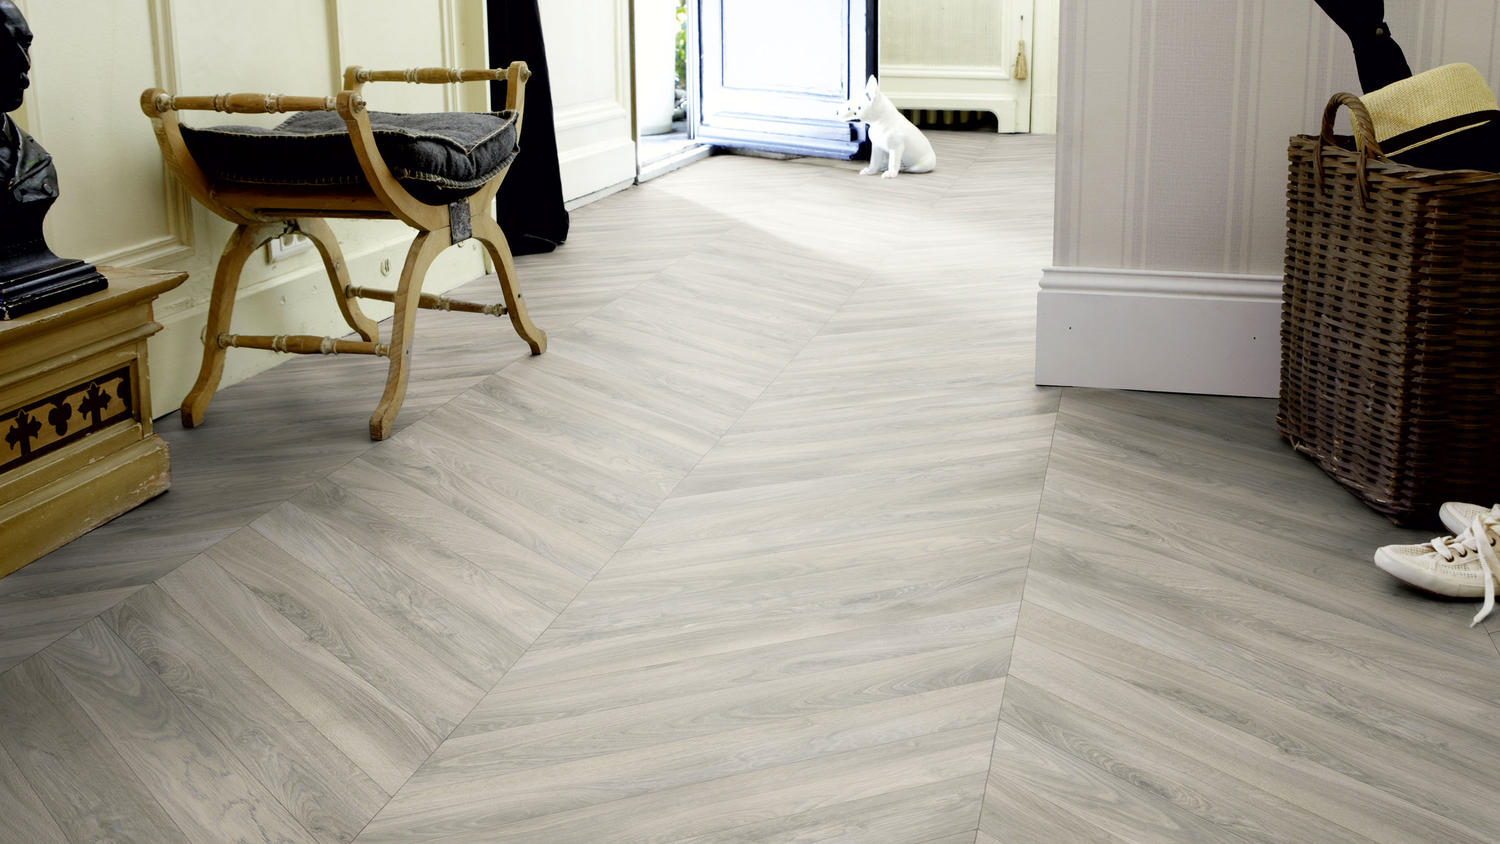 3 Top Benefits of Vinyl Flooring